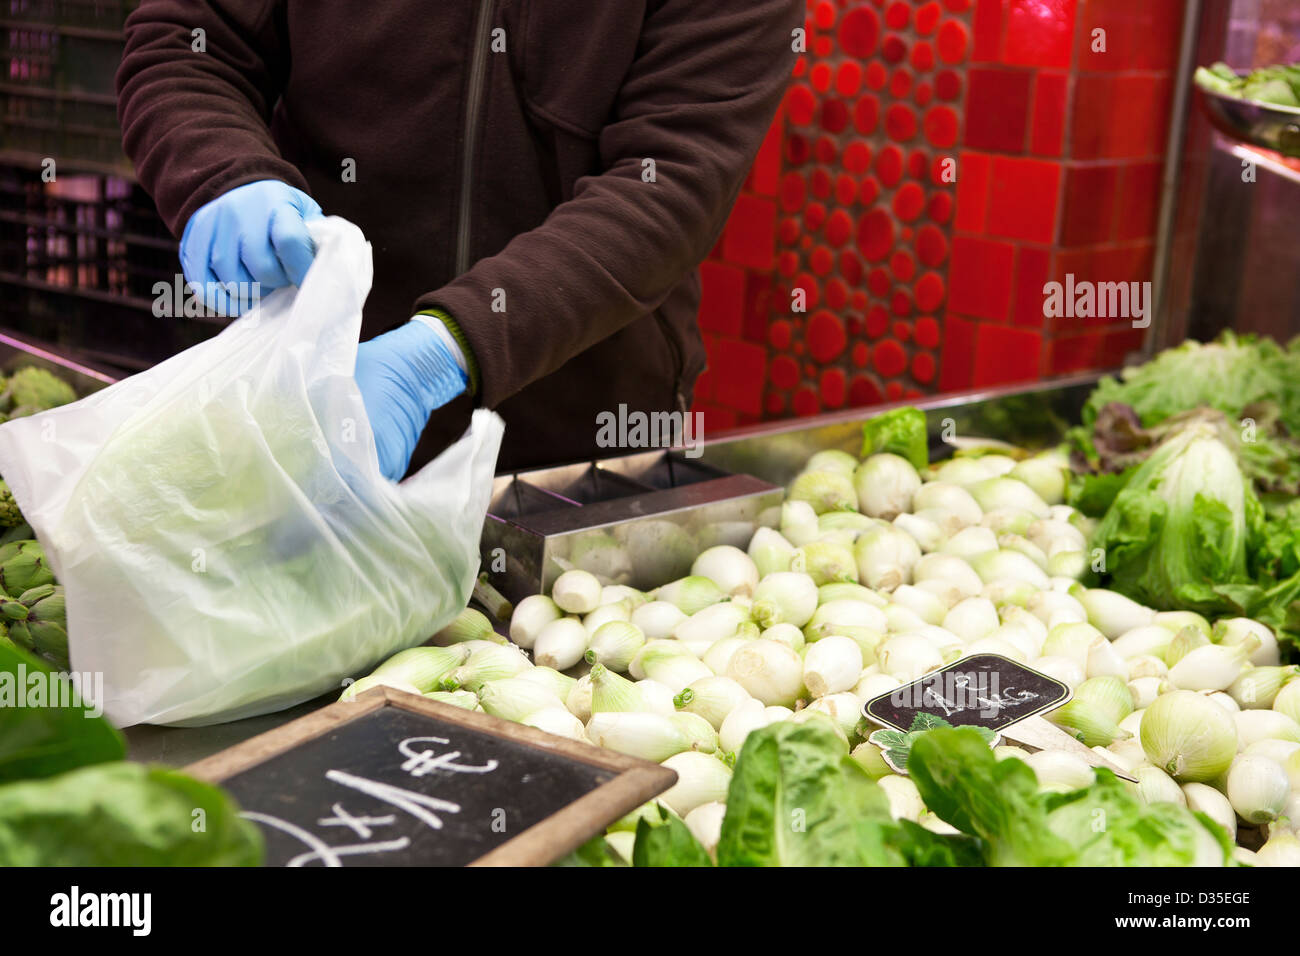 Promotion sales in greengrocery - Stock Image